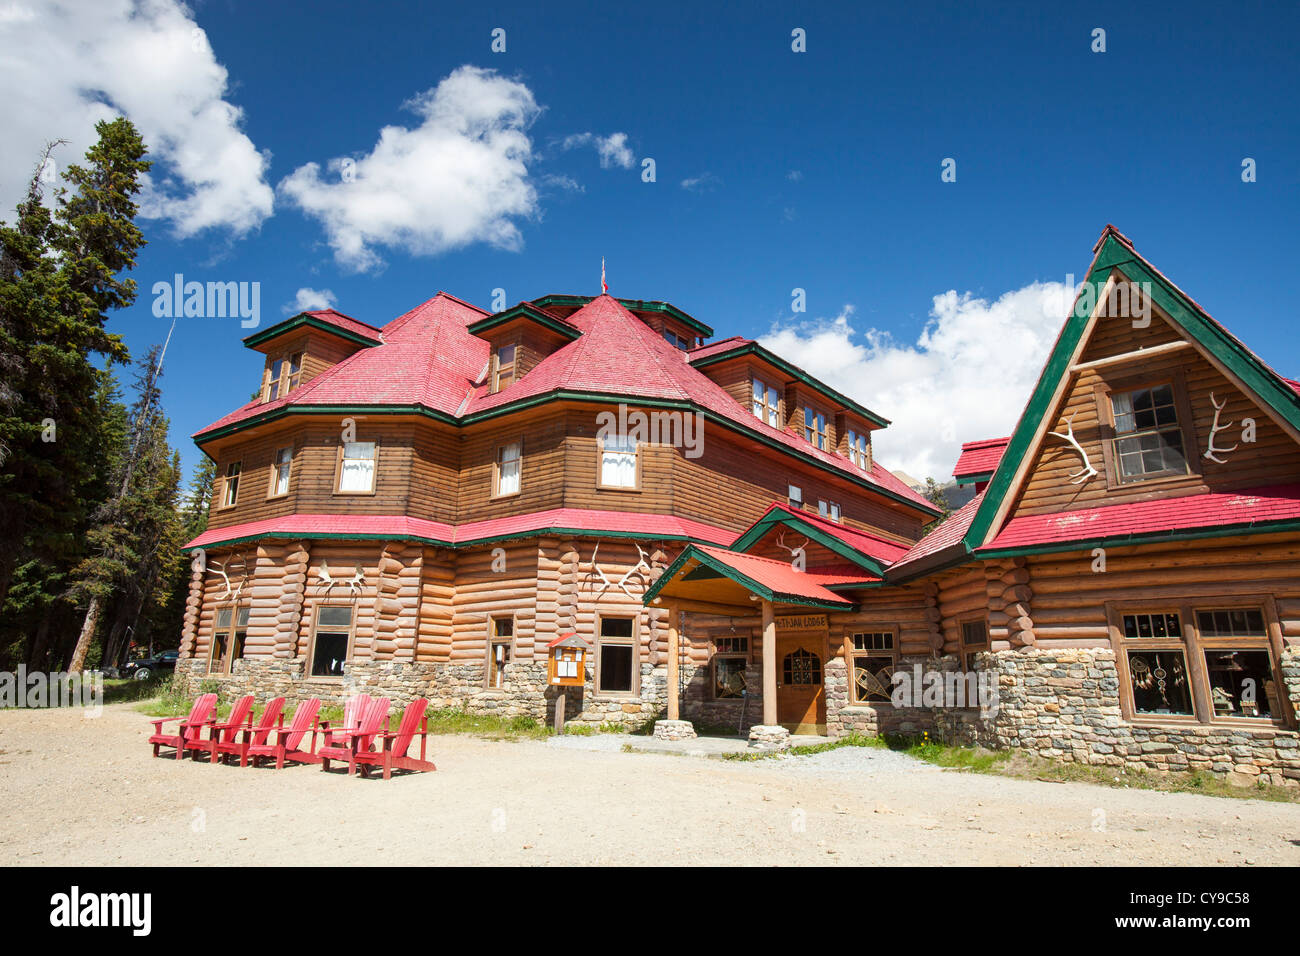 The Num Ti Jah Lodge near Bow Lake in the Canadian Rockies. - Stock Image